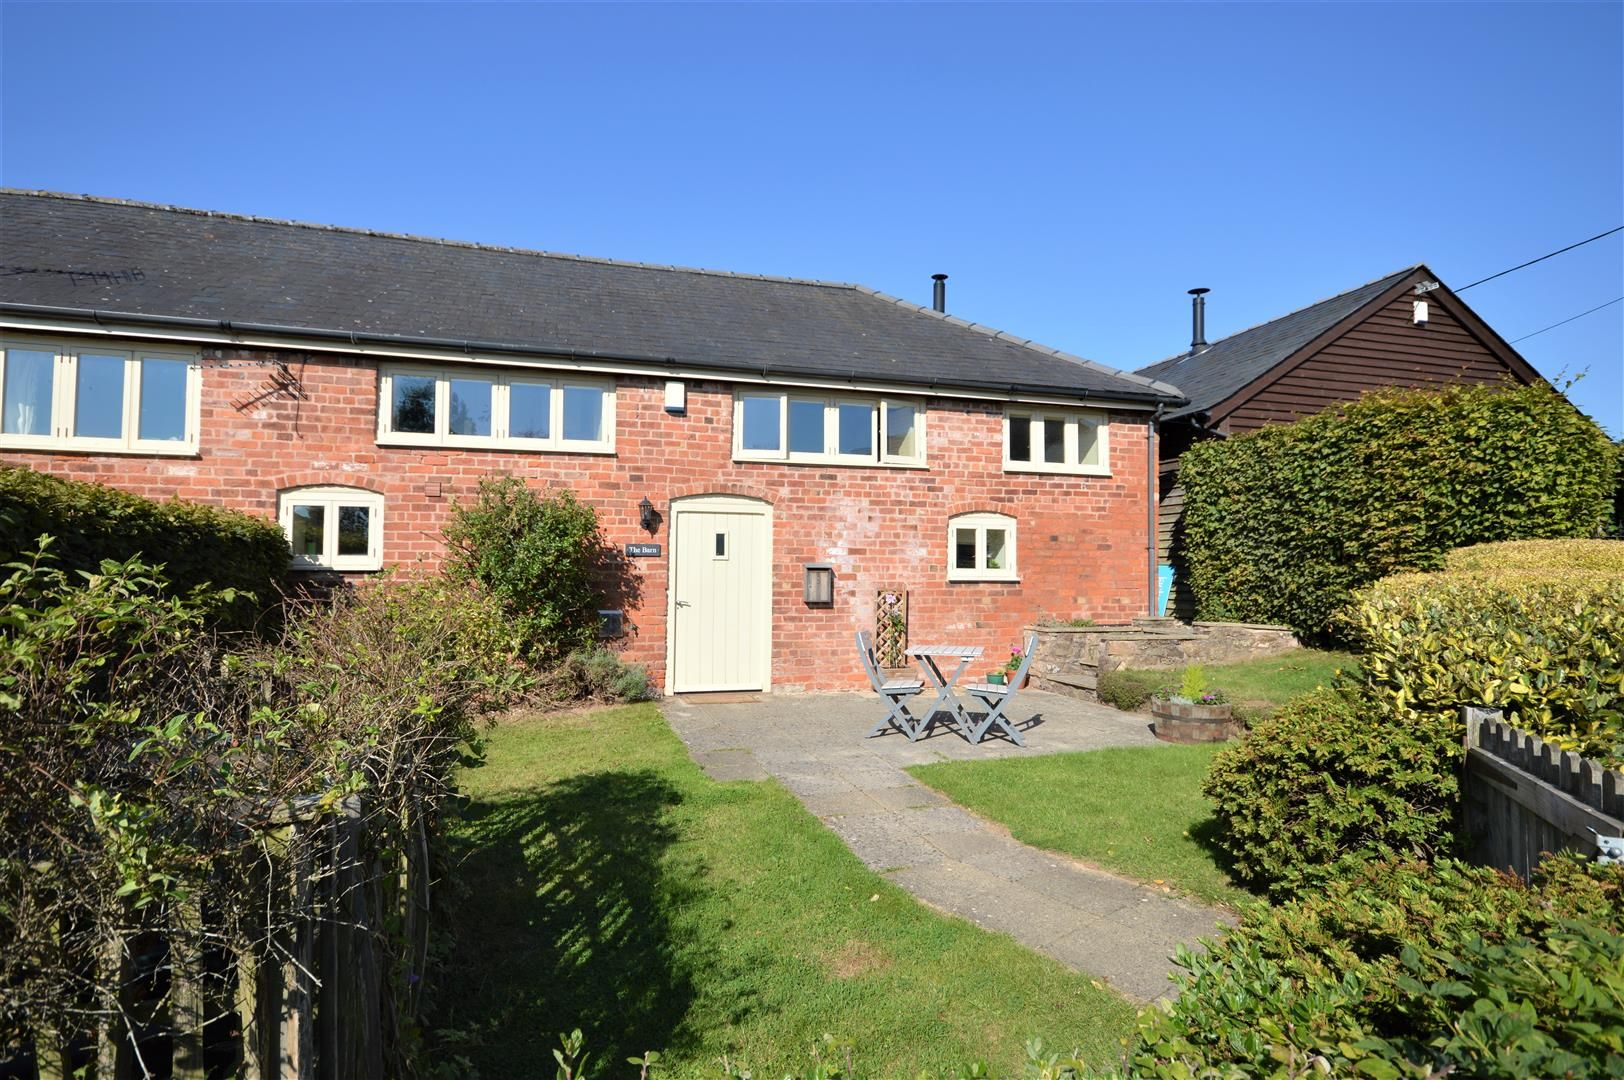 3 bed barn-conversion for sale in Luston, HR6